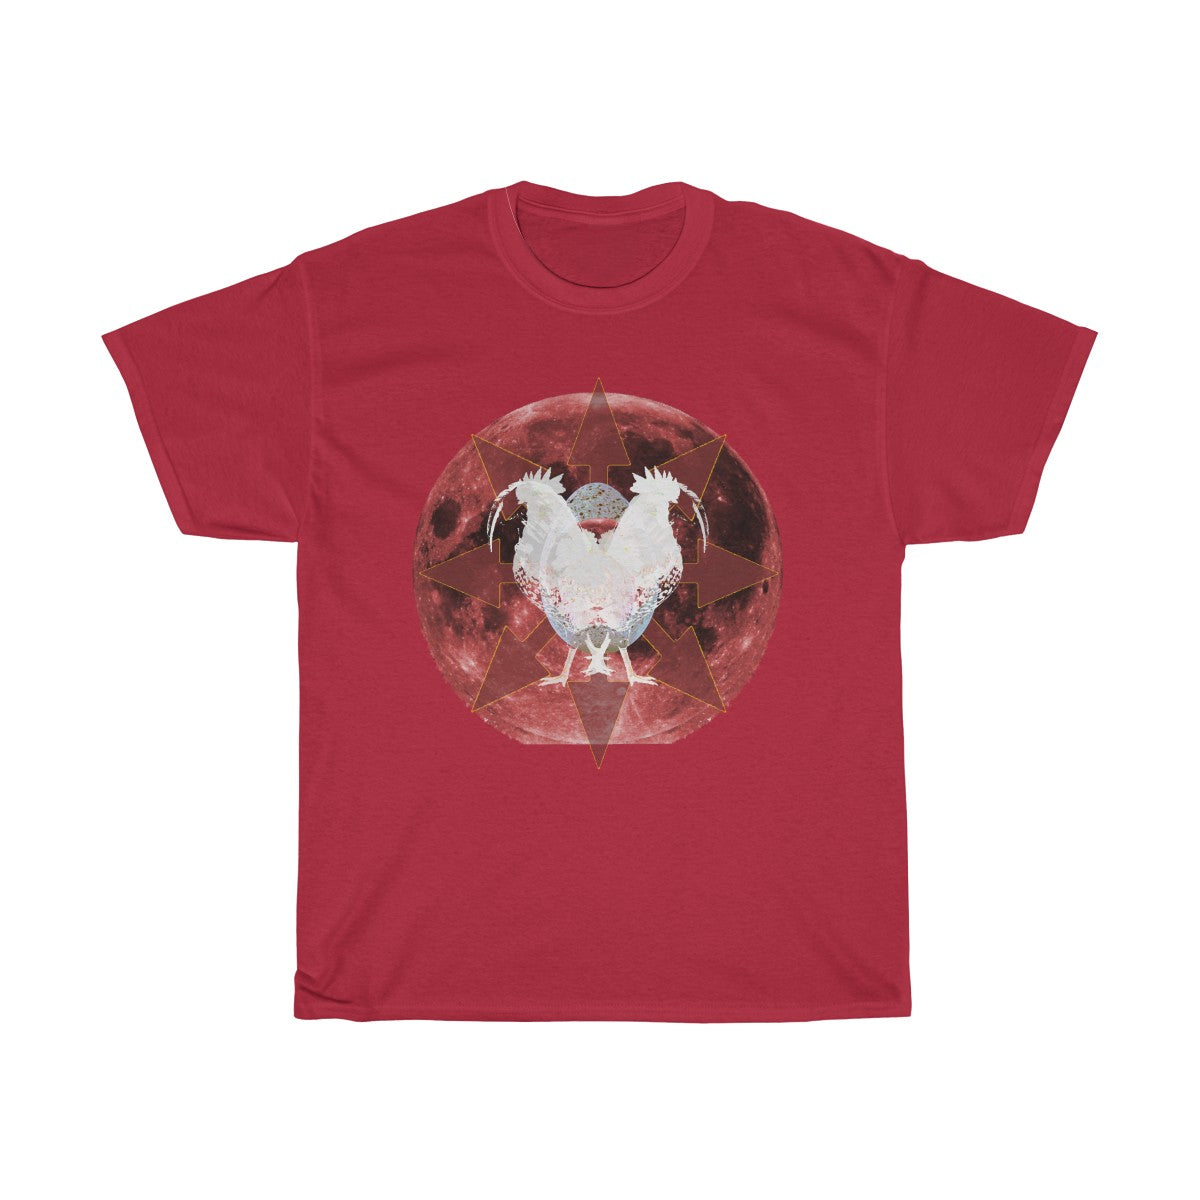 Chaos Egg T-Shirt